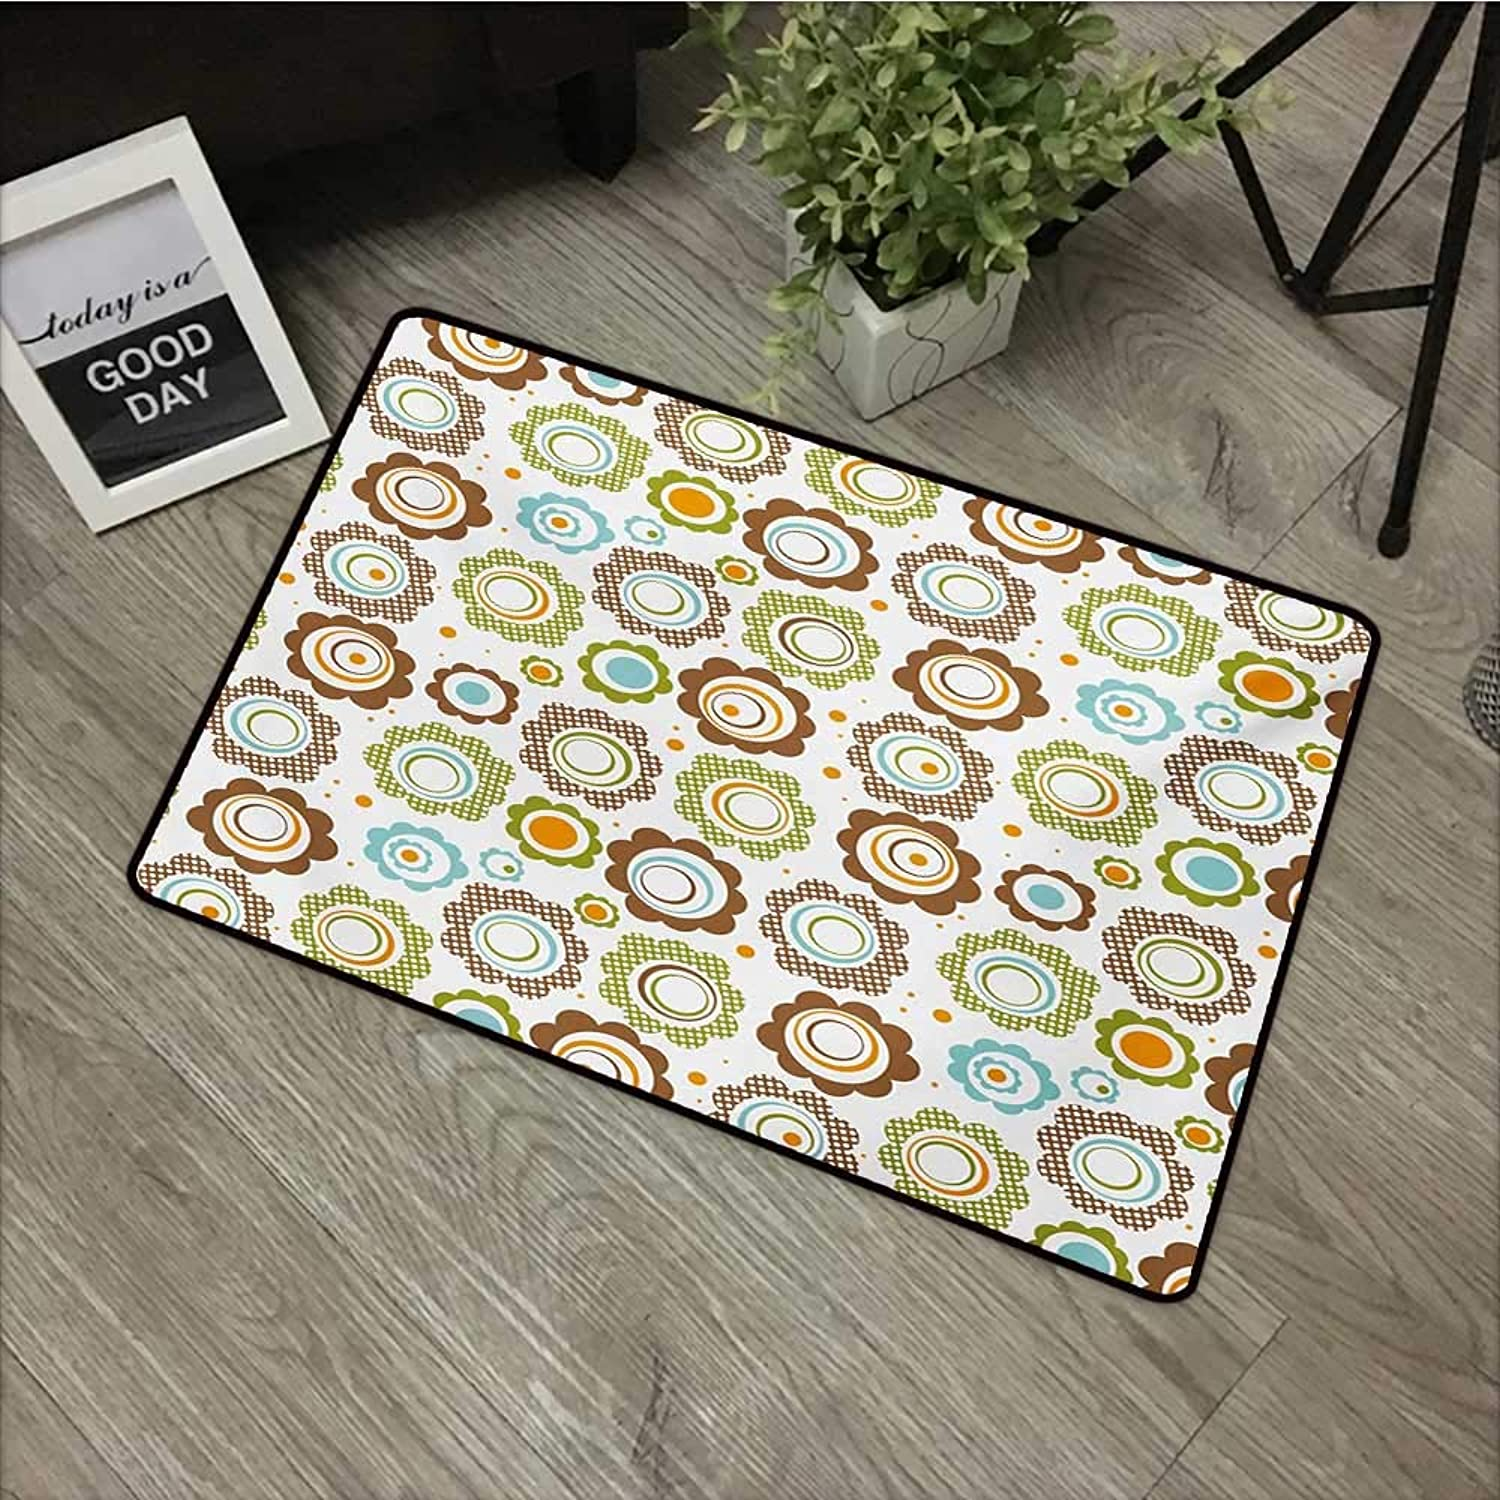 Clear Printed Pattern Door mat W35 x L59 INCH Floral,Traditional Retro Polka Dots Cartoon Style Abstract Flower Petals colorful Circles,Multicolor with Non-Slip Backing Door Mat Carpet